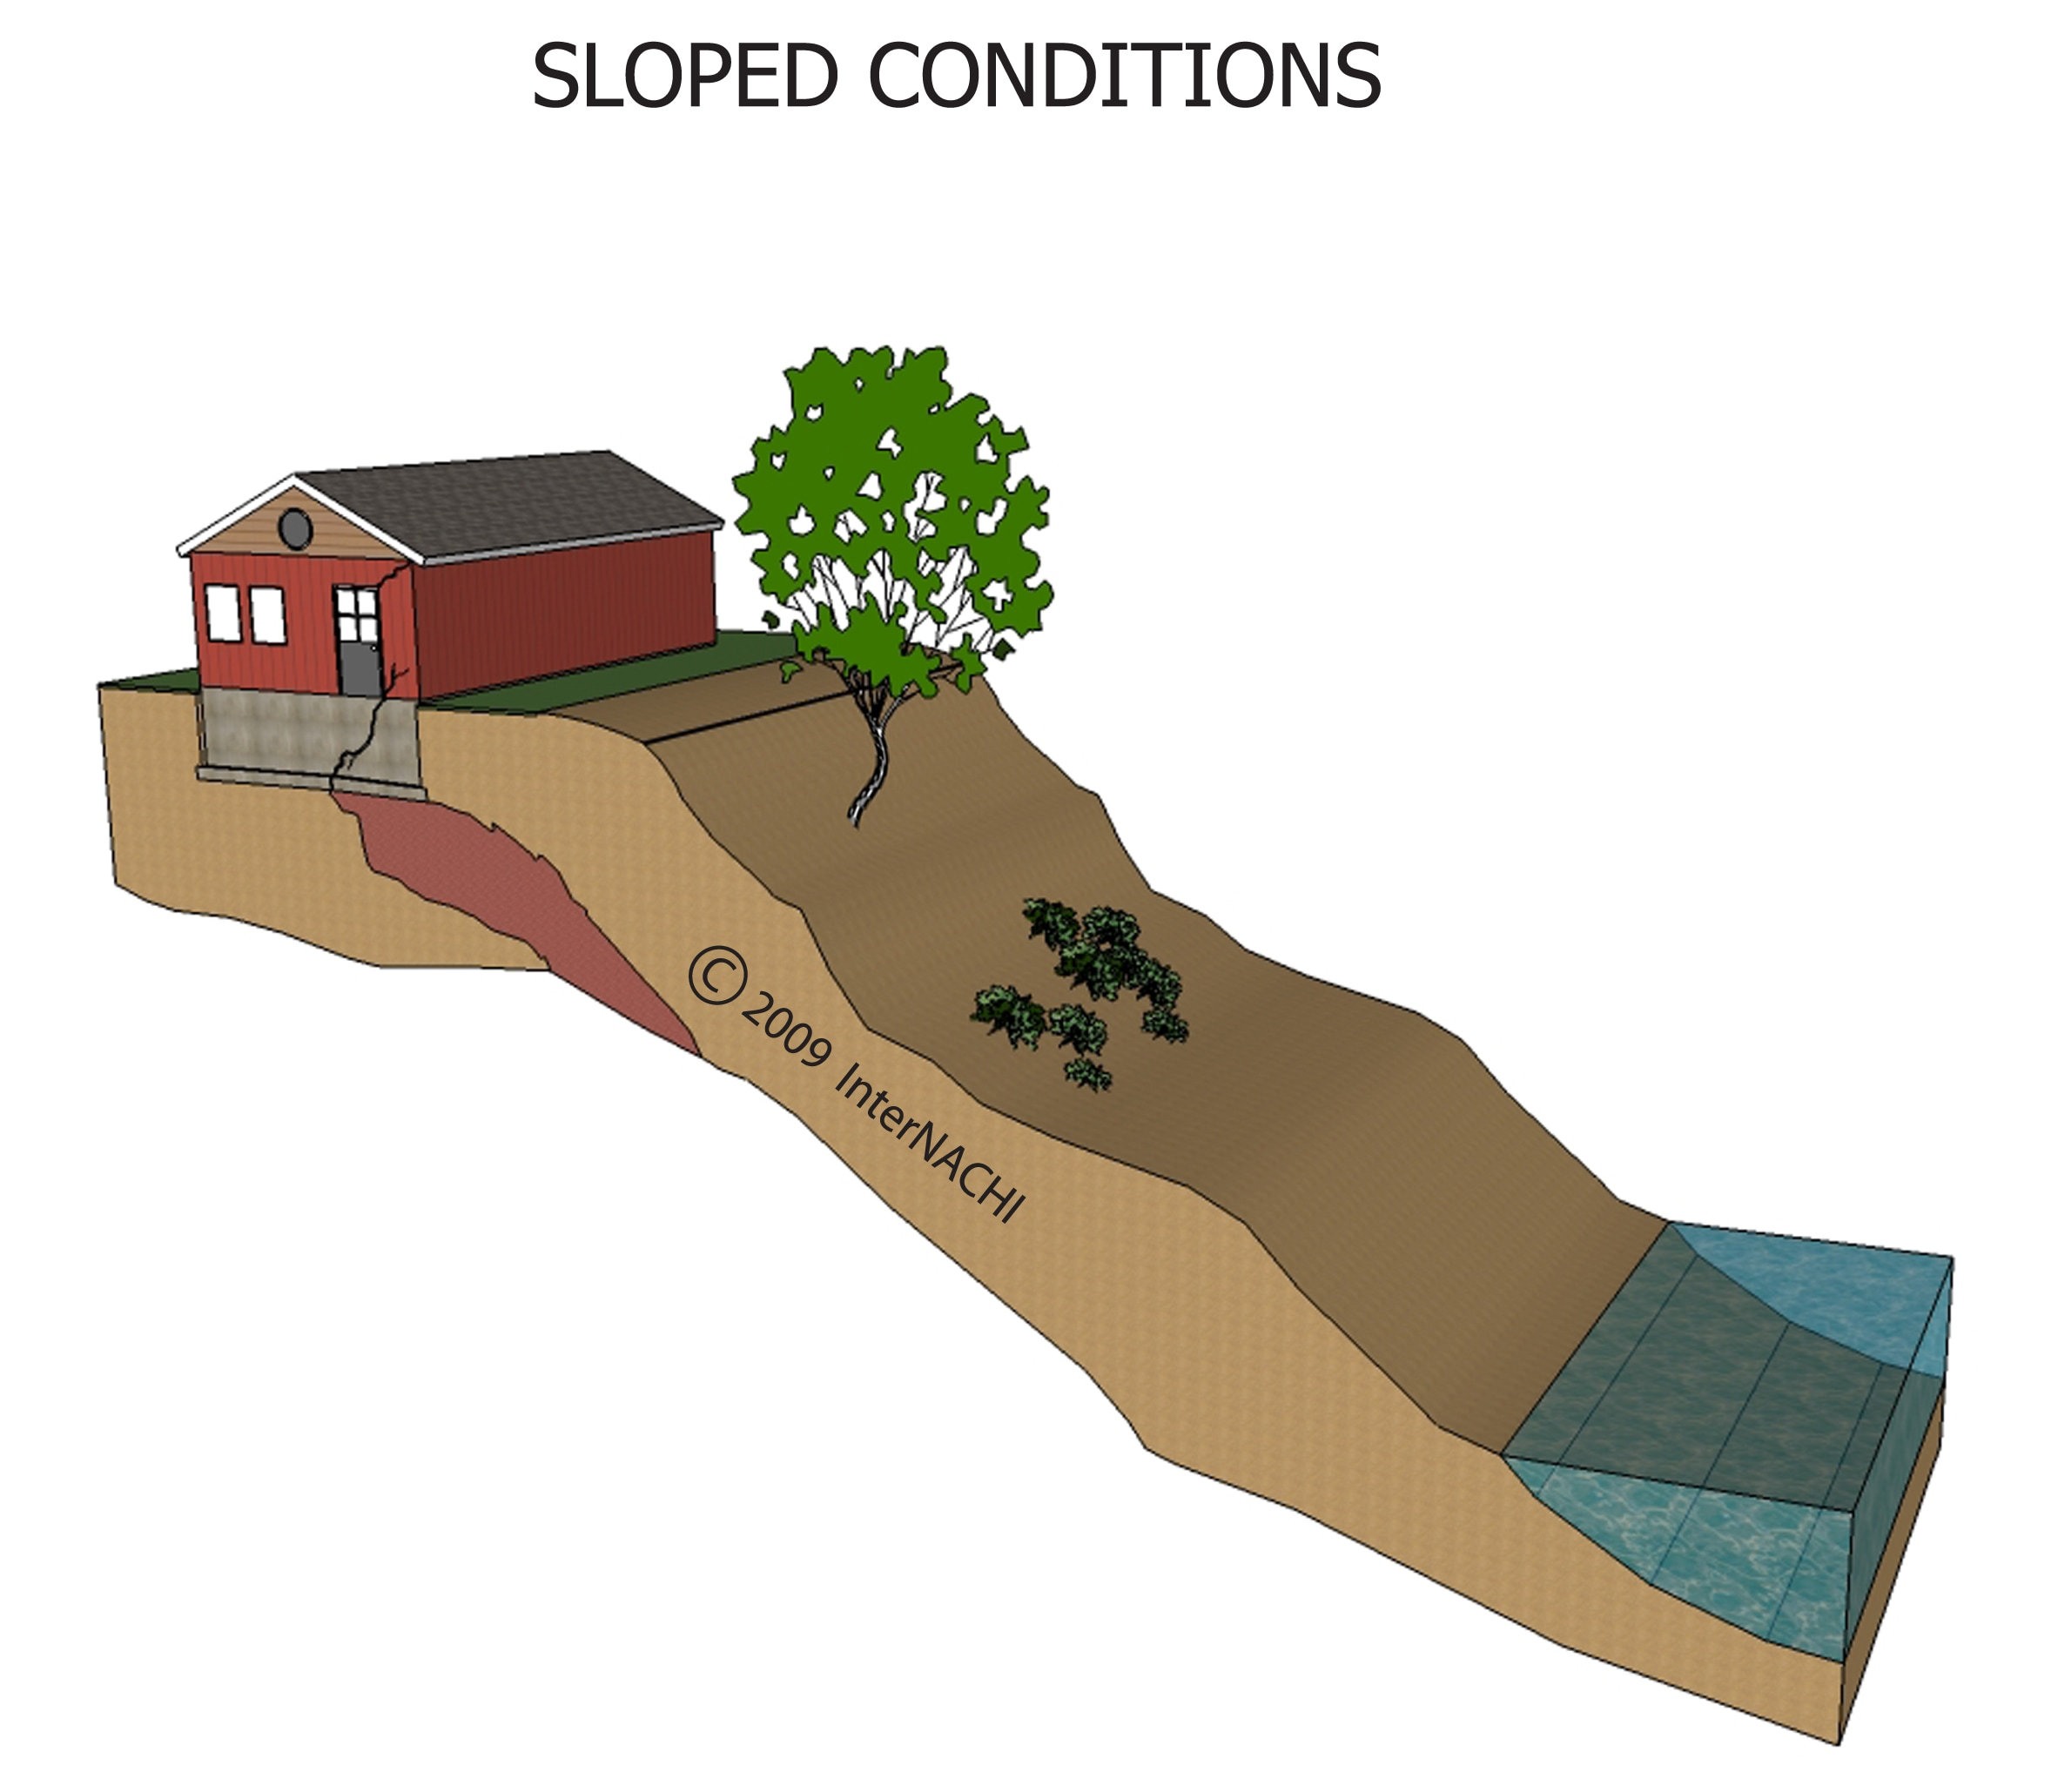 Sloped conditions.